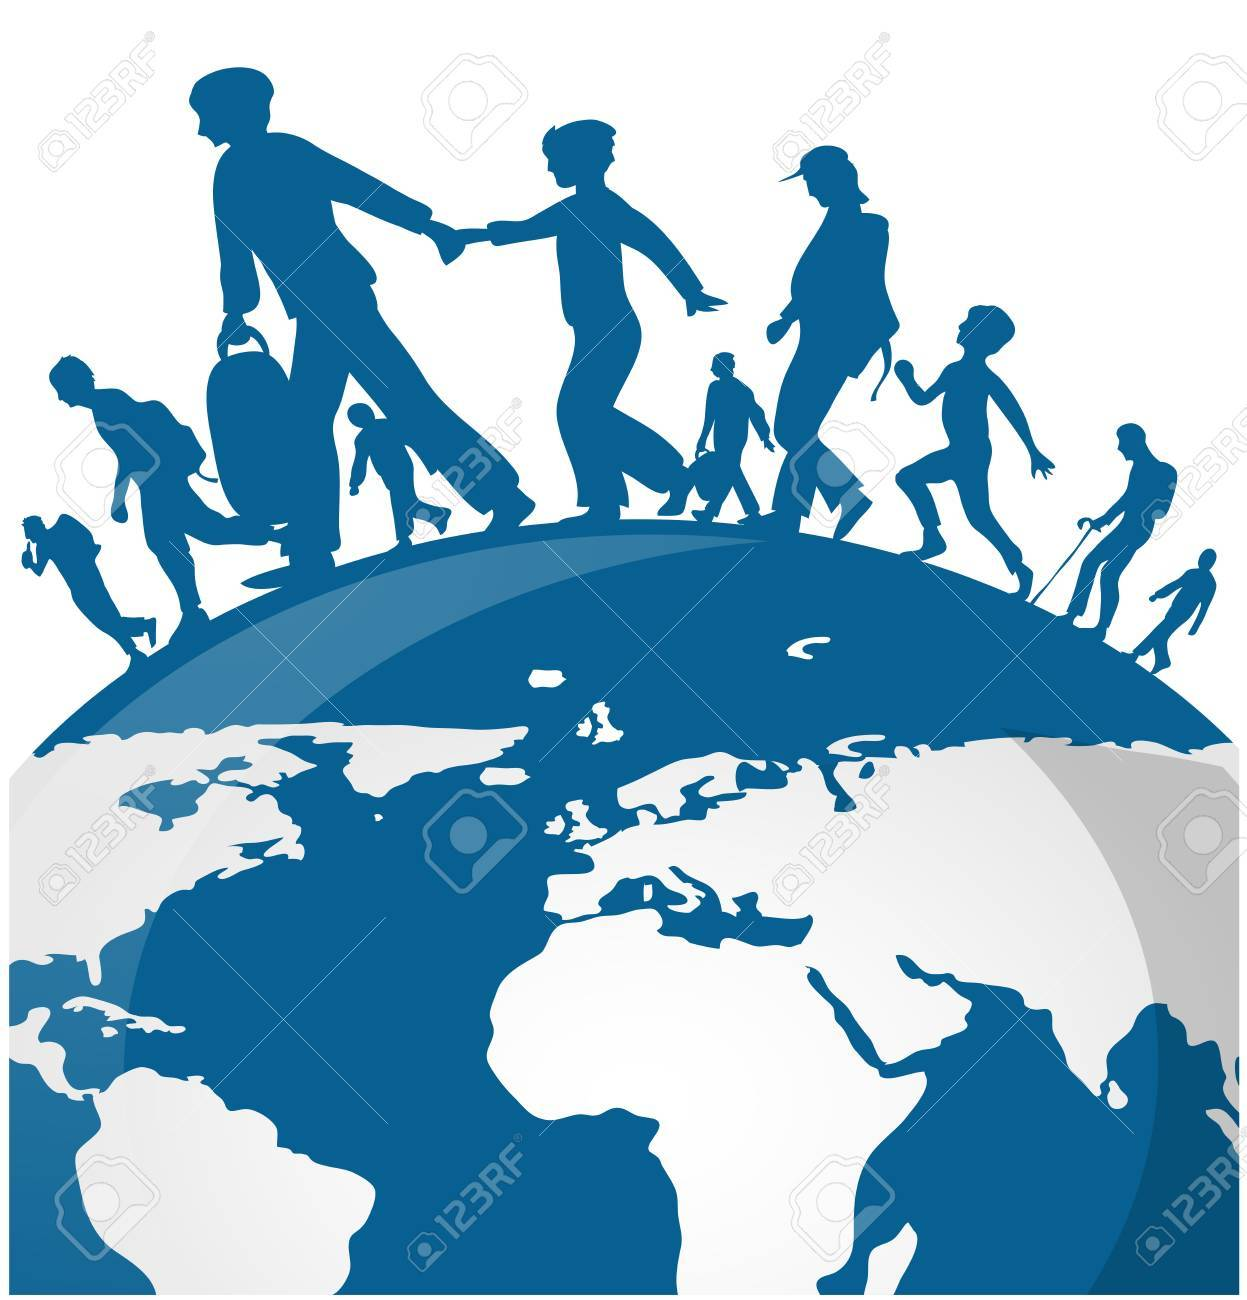 Immigration people on world map background - 84490595